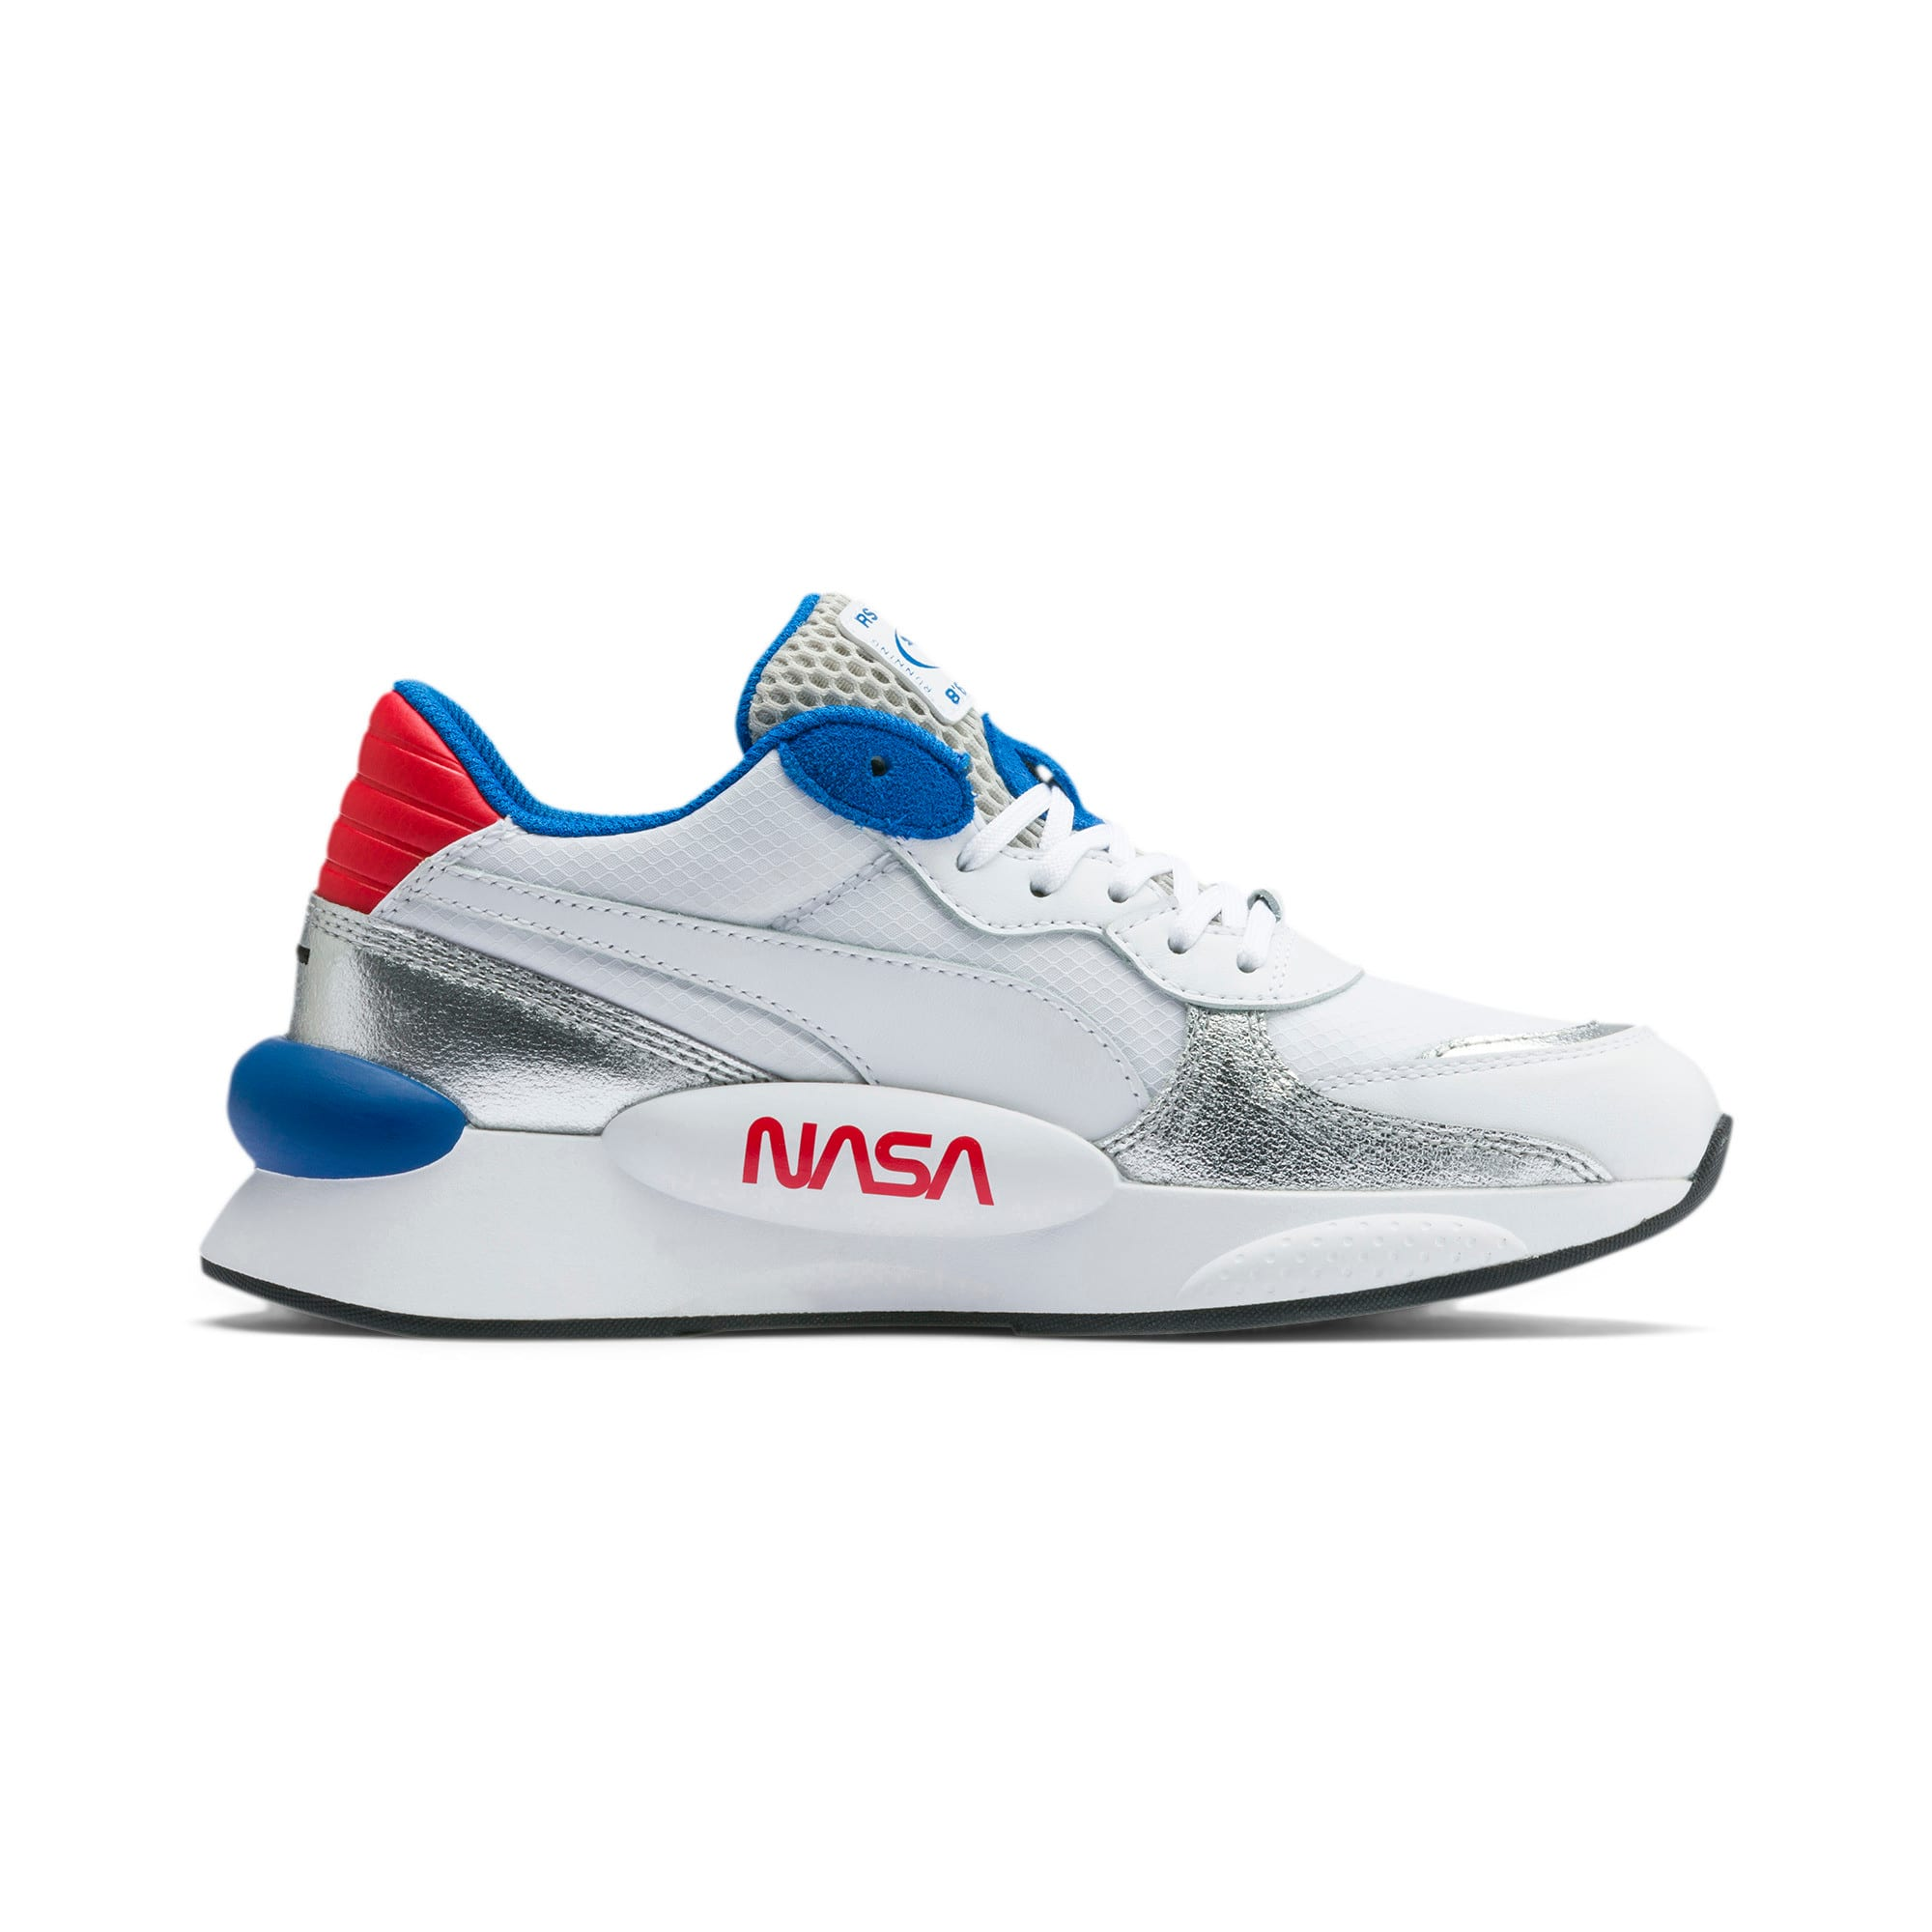 Scarpe da ginnastica RS 9.8 Space Explorer Youth, Puma White-Puma Silver, Grande